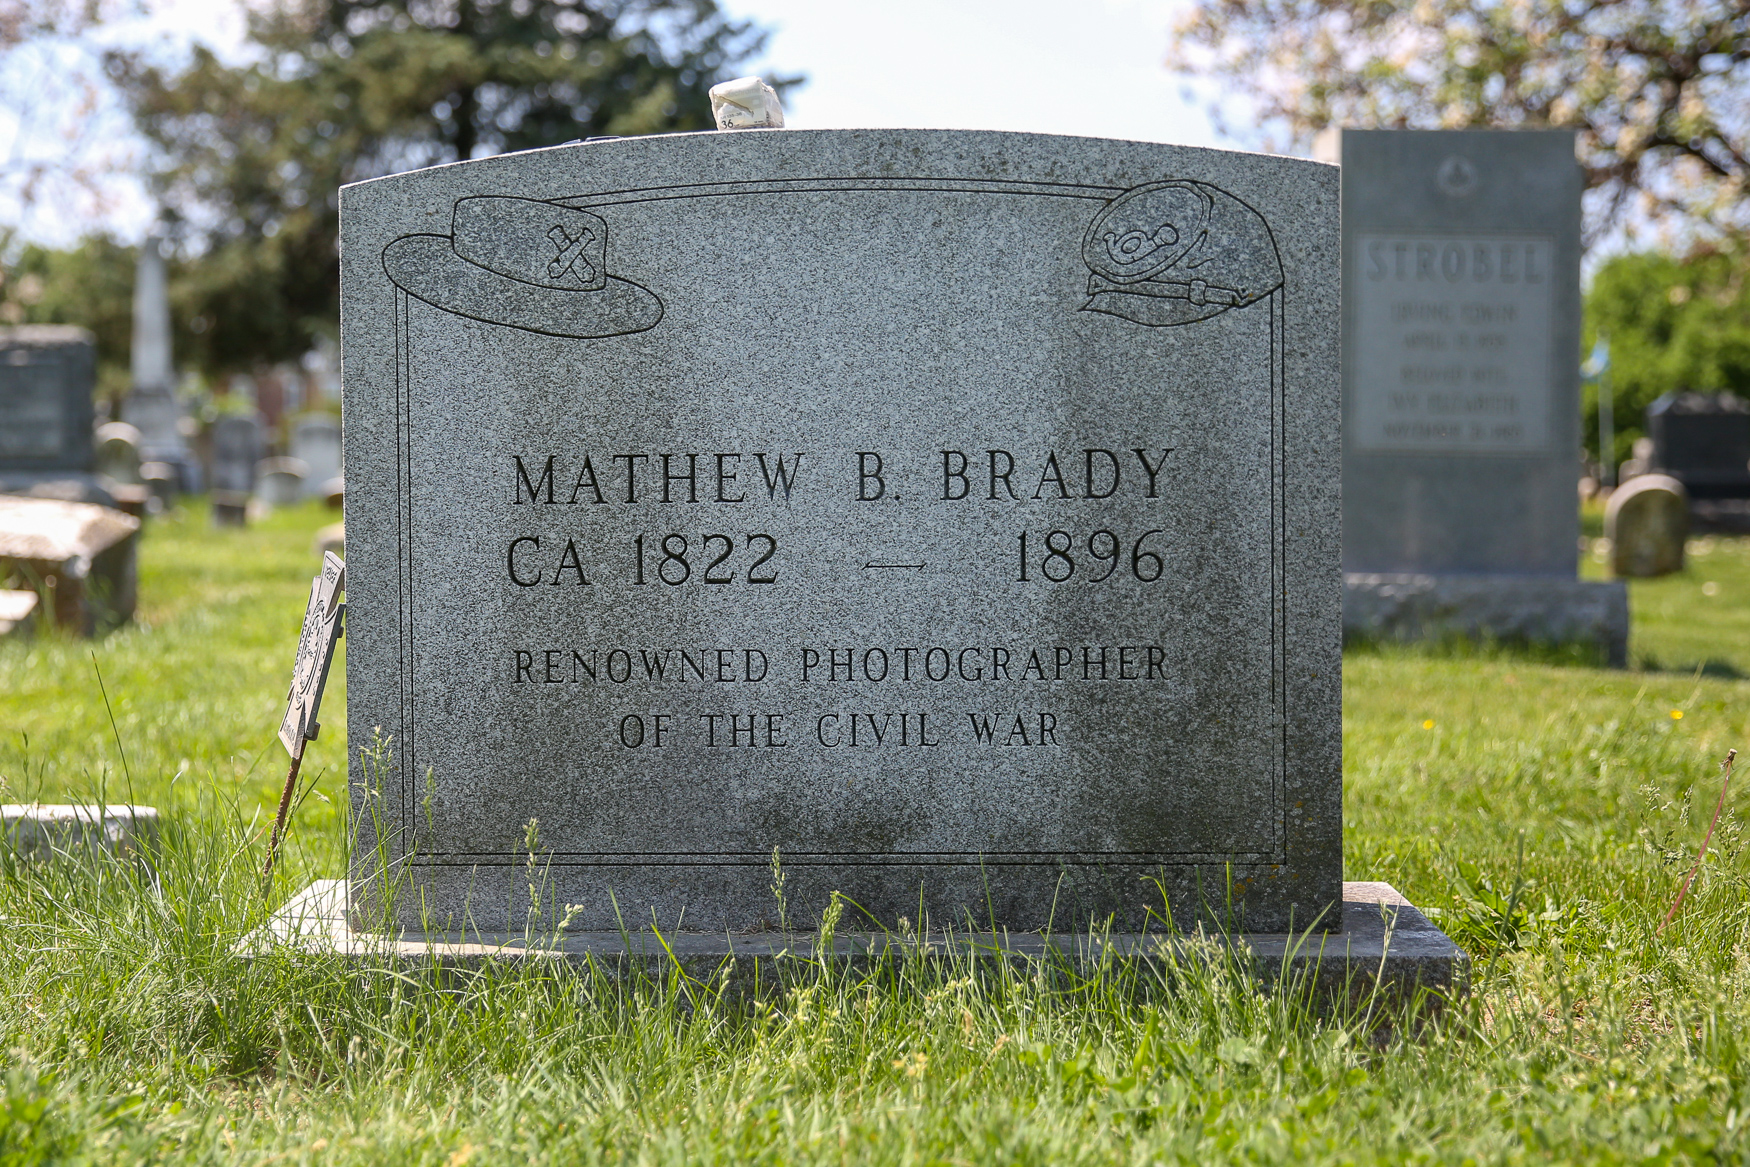 <p>Mathew Brady is considered the father of photojournalism. Brady was known for capturing scenes from the Civil War on both sides. Although he was aided by assistants, Brady photographed 18 presidents and created some of the most iconic images of the era. Brady's career faltered by the end of the war and he died alone. (Amanda Andrade-Rhoades/DC Refined)</p>